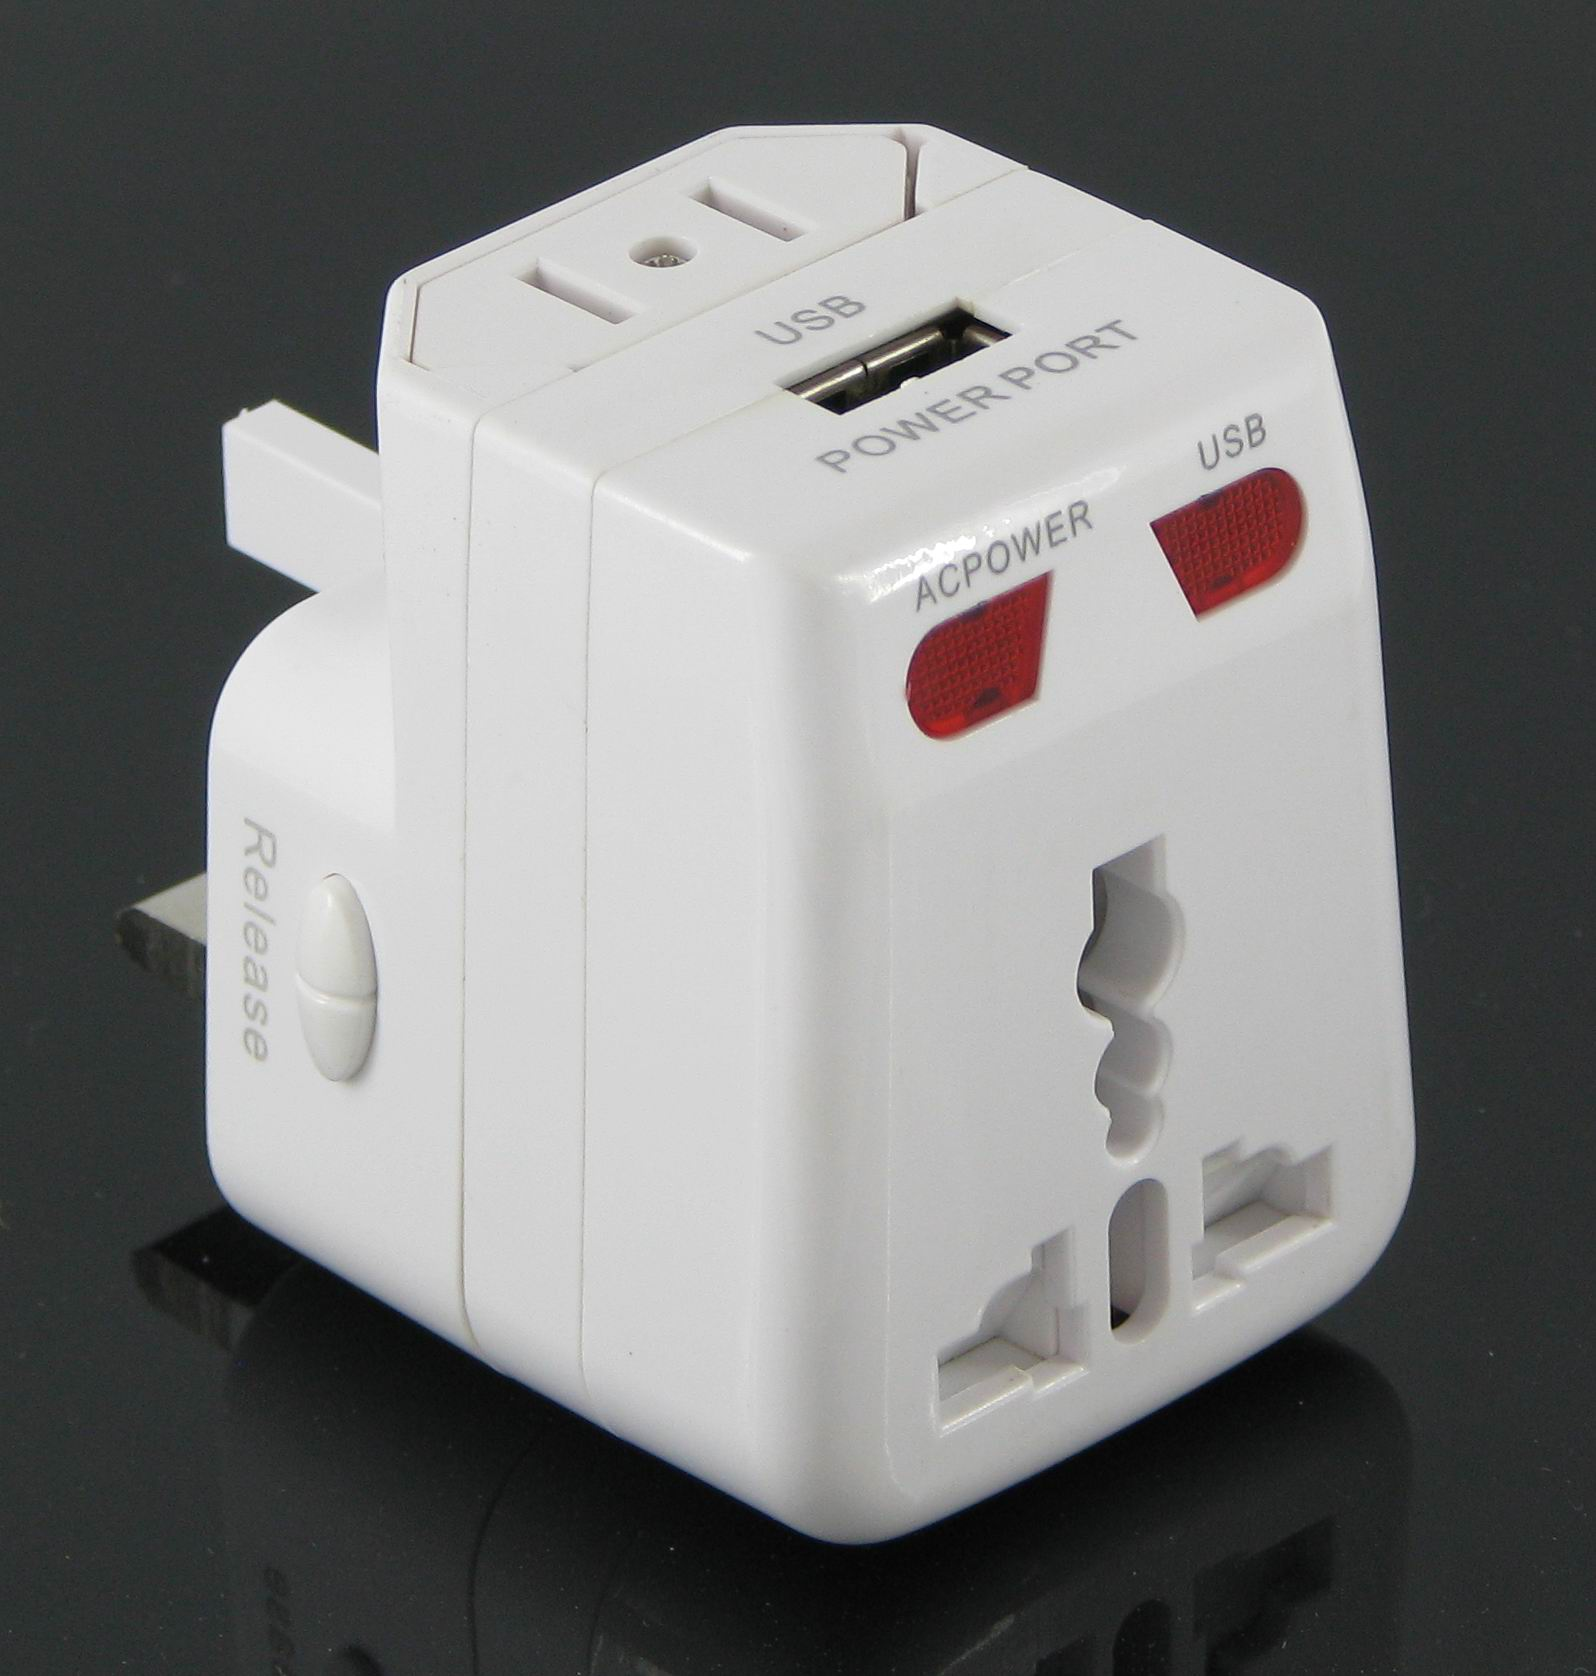 Universal Adapter with USB, Suitable for Traveling and Promotional Purposes